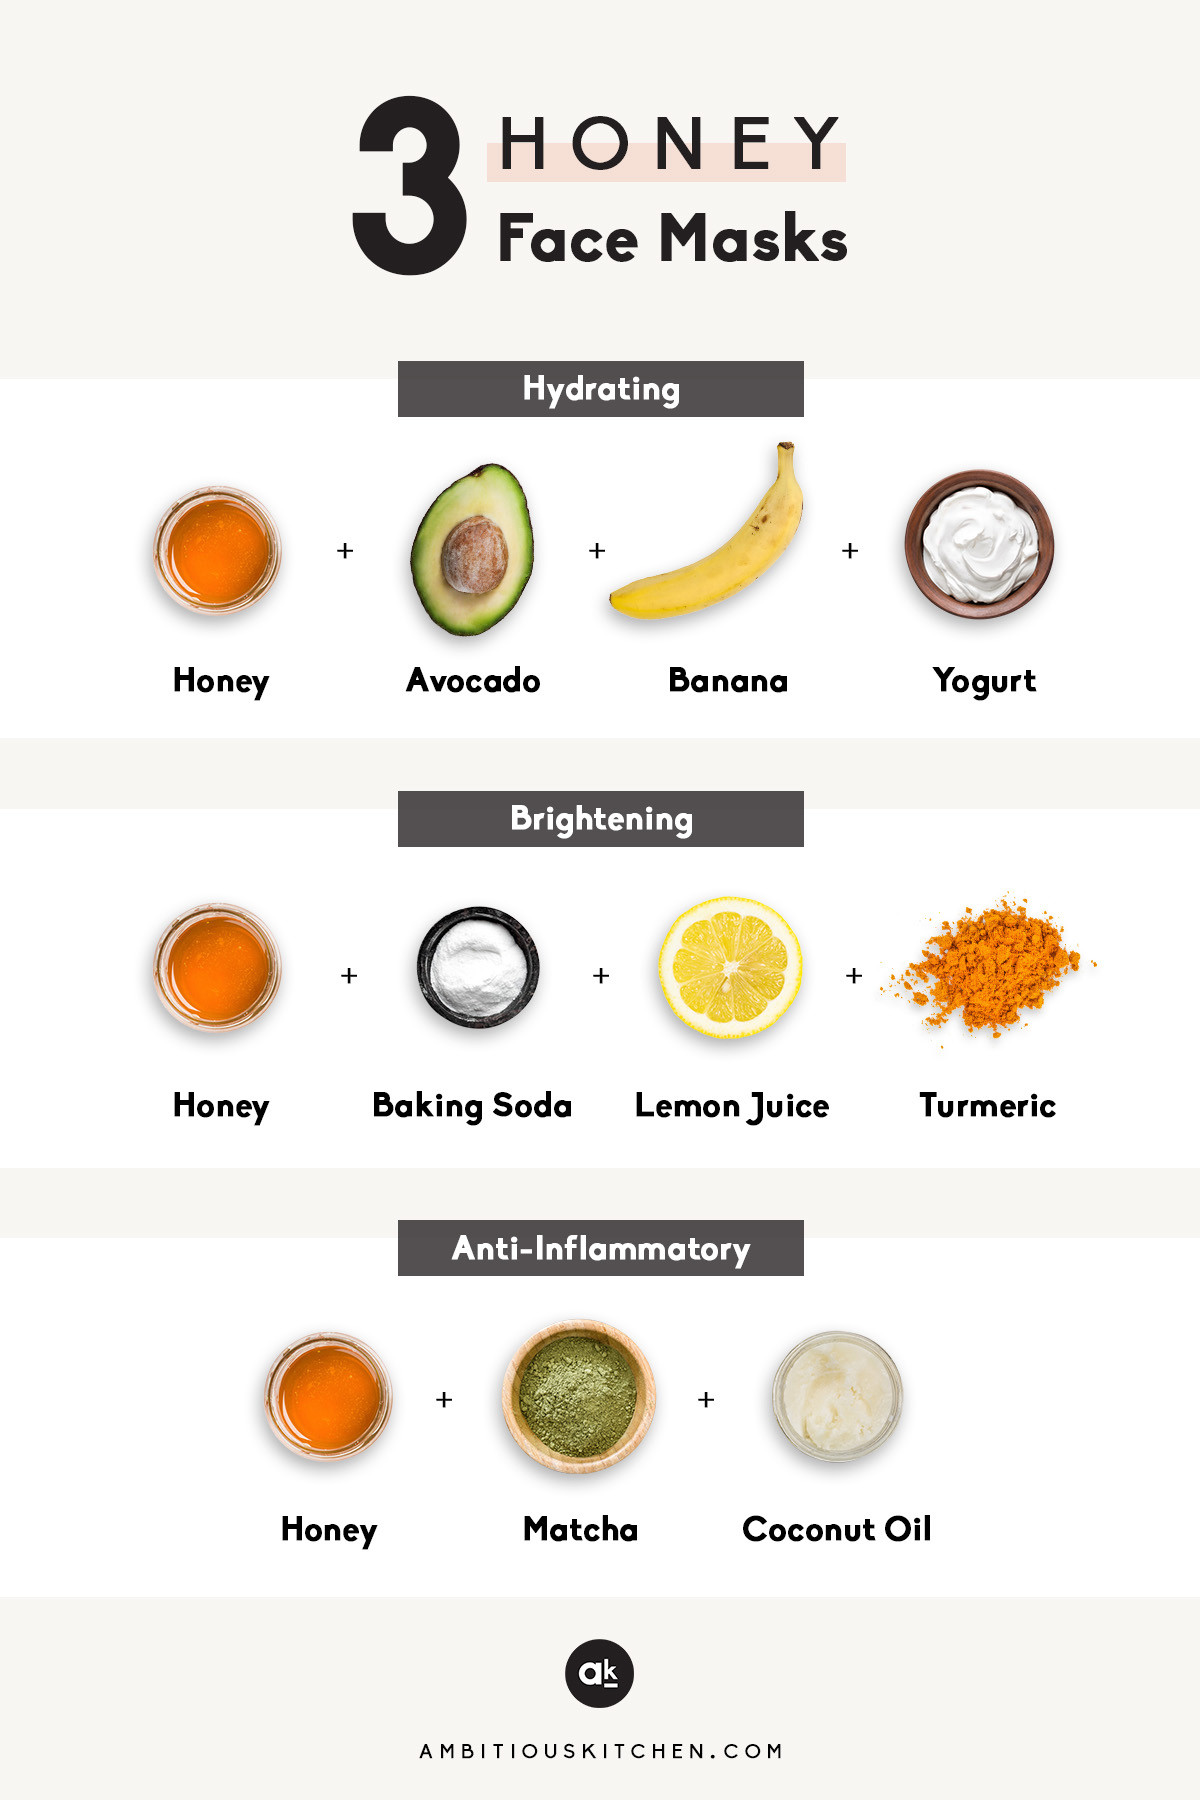 Best ideas about DIY Homemade Face Masks . Save or Pin 3 DIY Honey Face Masks video Now.